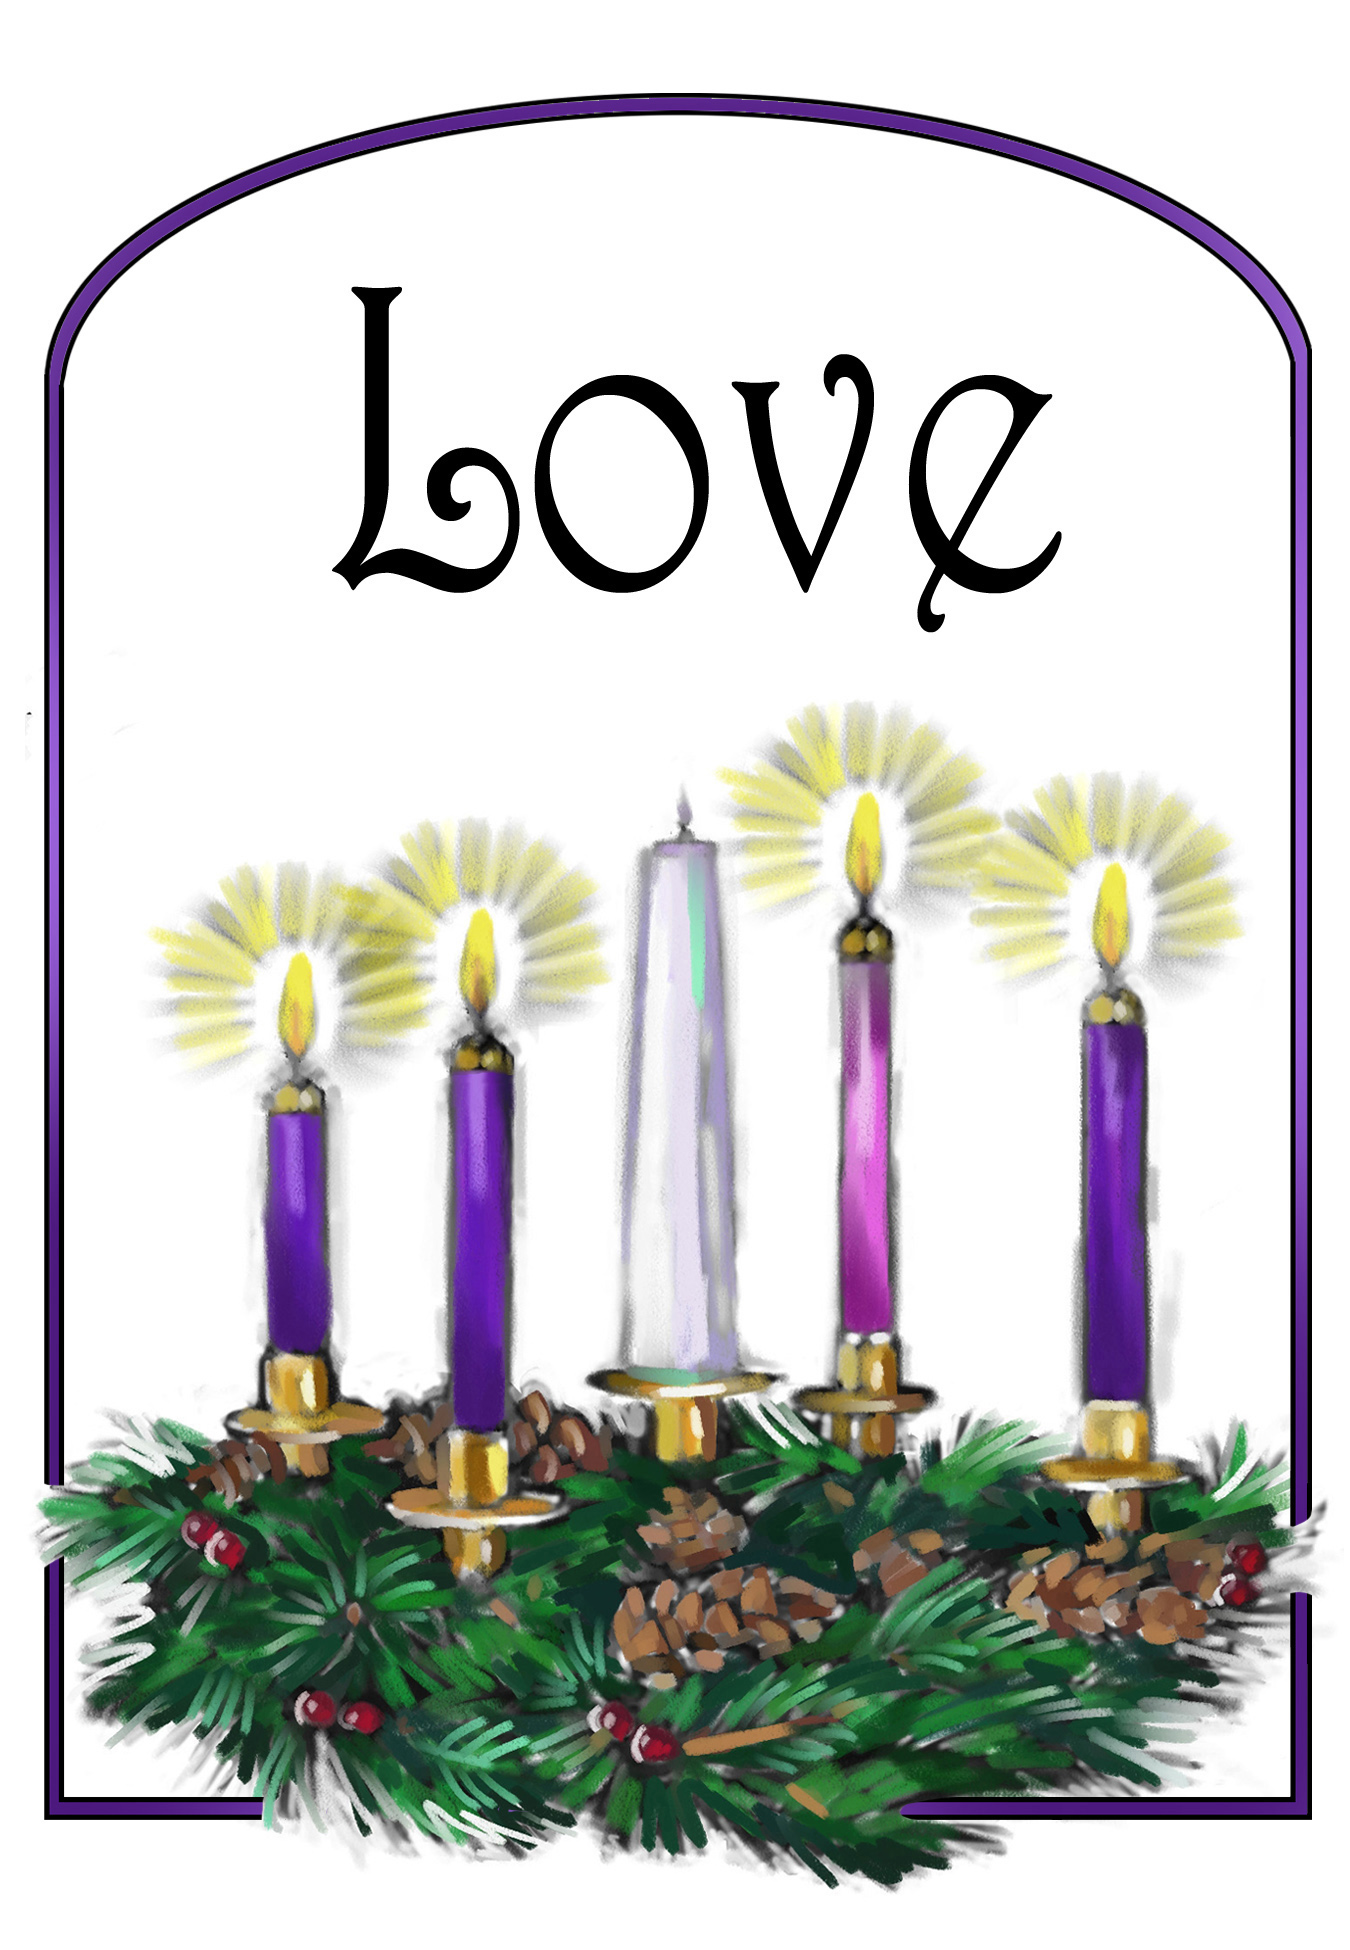 What is gilead presbyterian. Advent clipart one candle lit